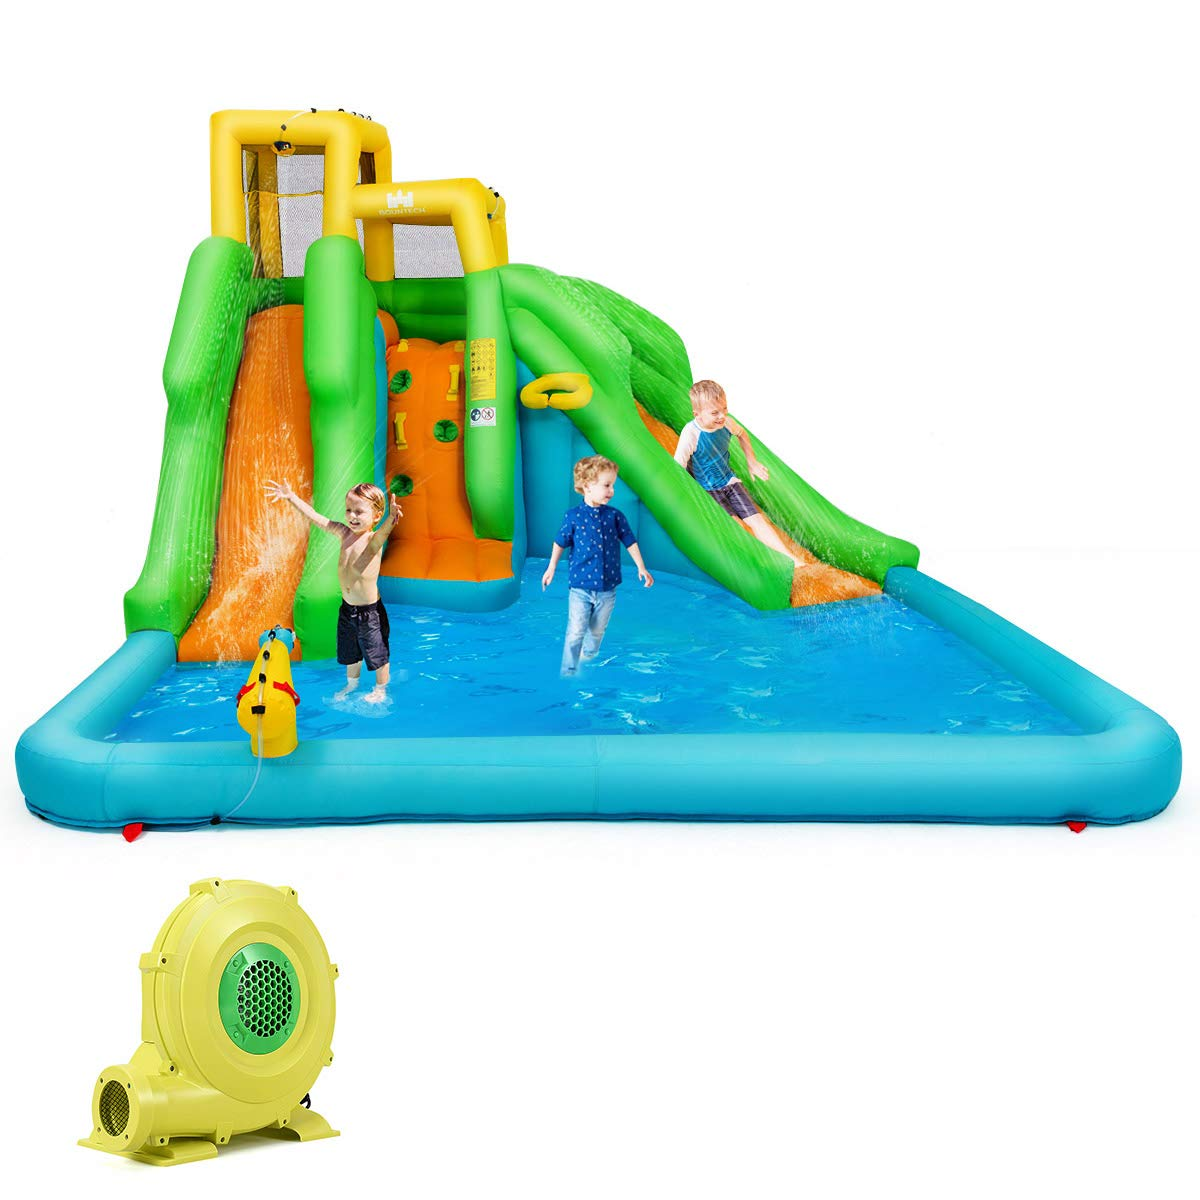 BOUNTECH Inflatable Bounce House, Mighty Water Pool with Two Slides, Climbing Wall, Basketball Rim, Splash Pool, Water Cannon, Including Carry Bag, Repairing Kit, Stakes, Hose (with 480W Air Blower)